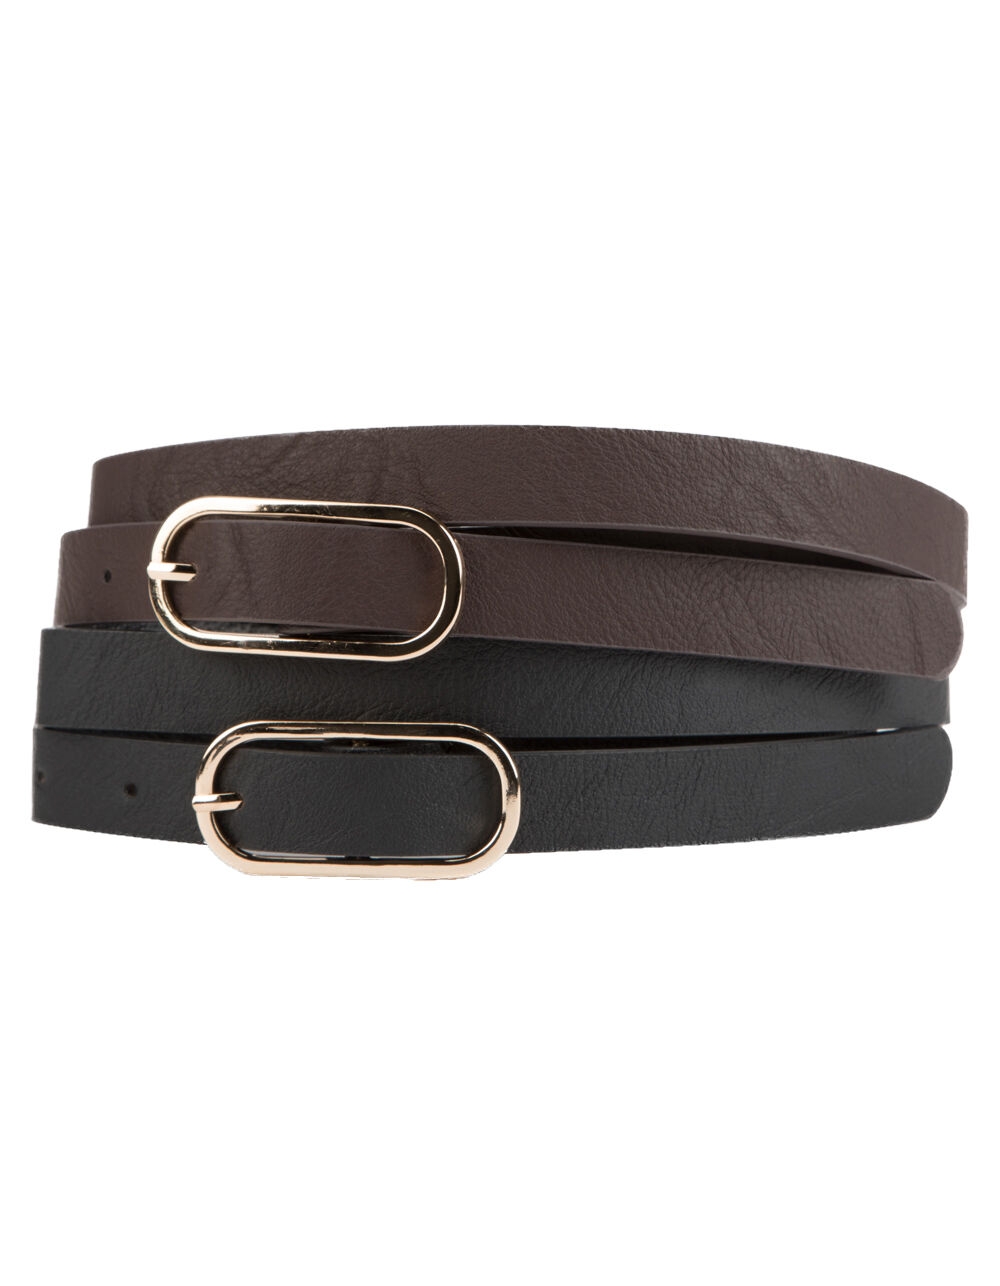 Image of 2 PACK BROOKE BELT